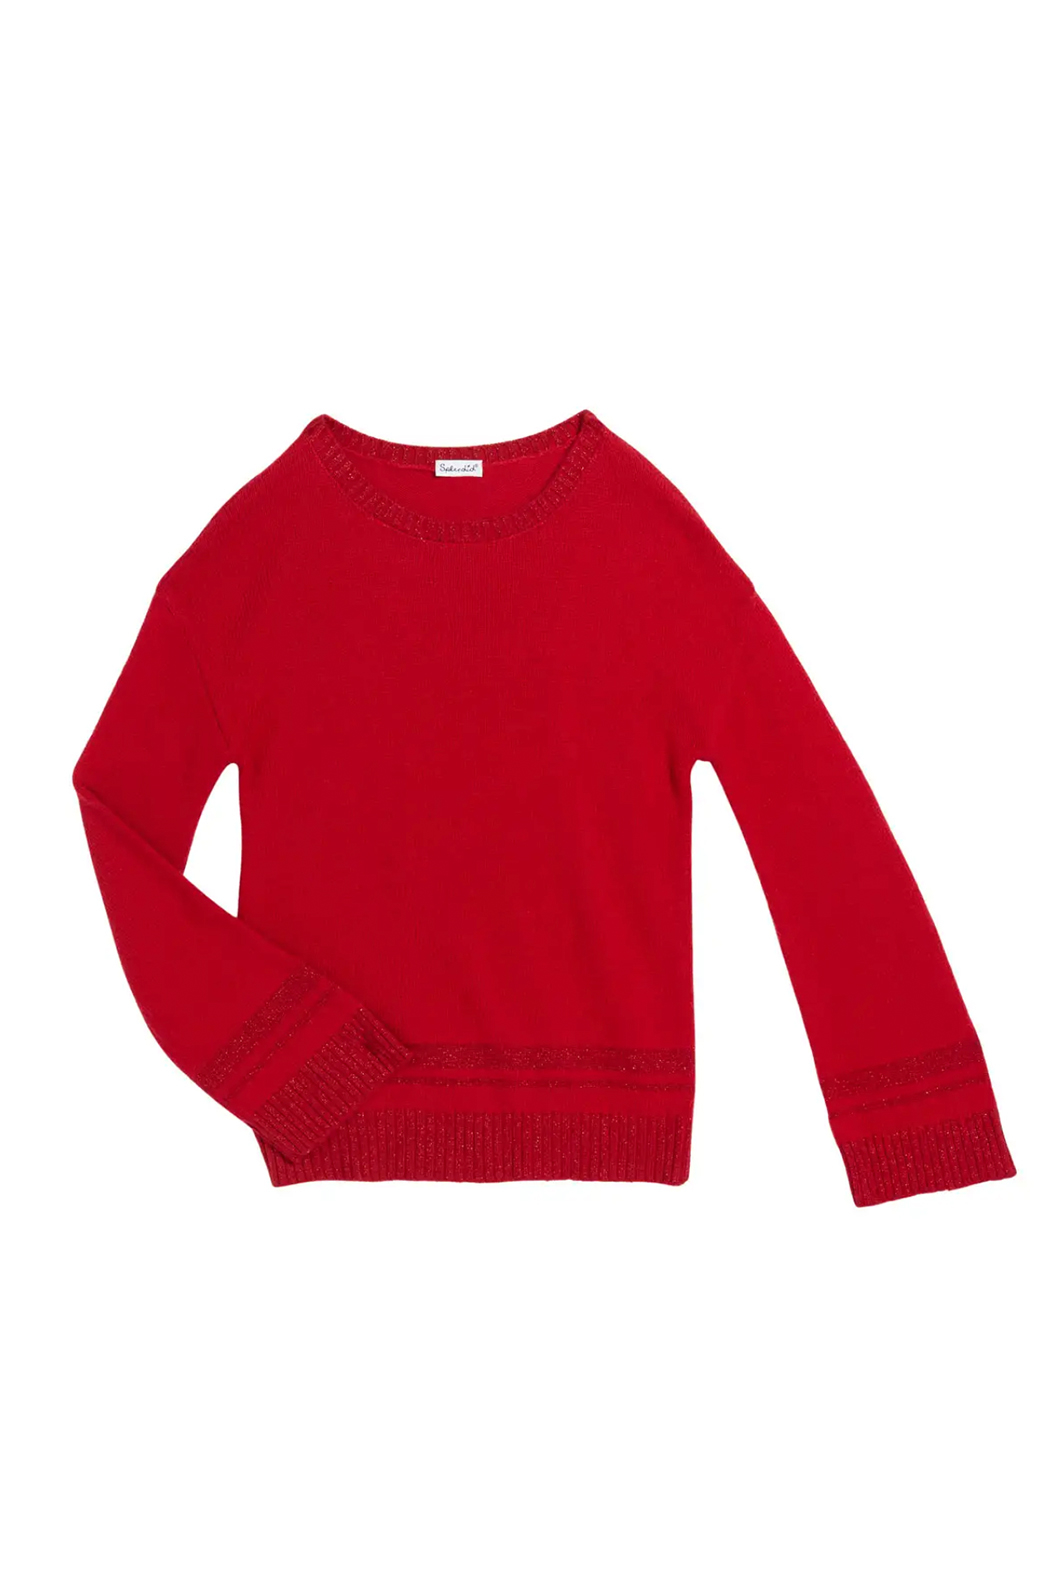 Splendid Lurex Knit Sweater - Front Cropped Image